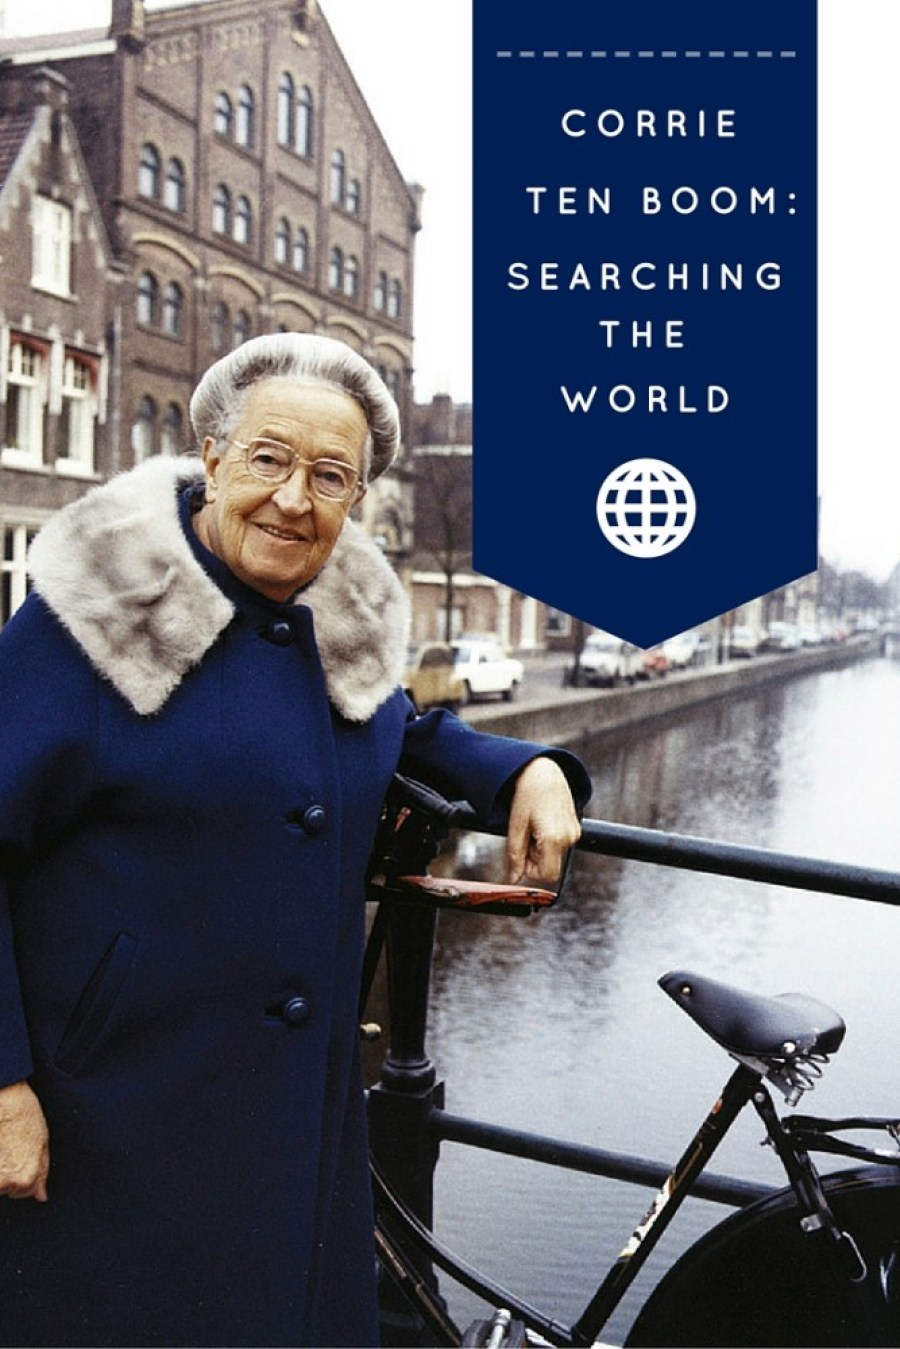 The - Searching the World for Corrie Ten Boom